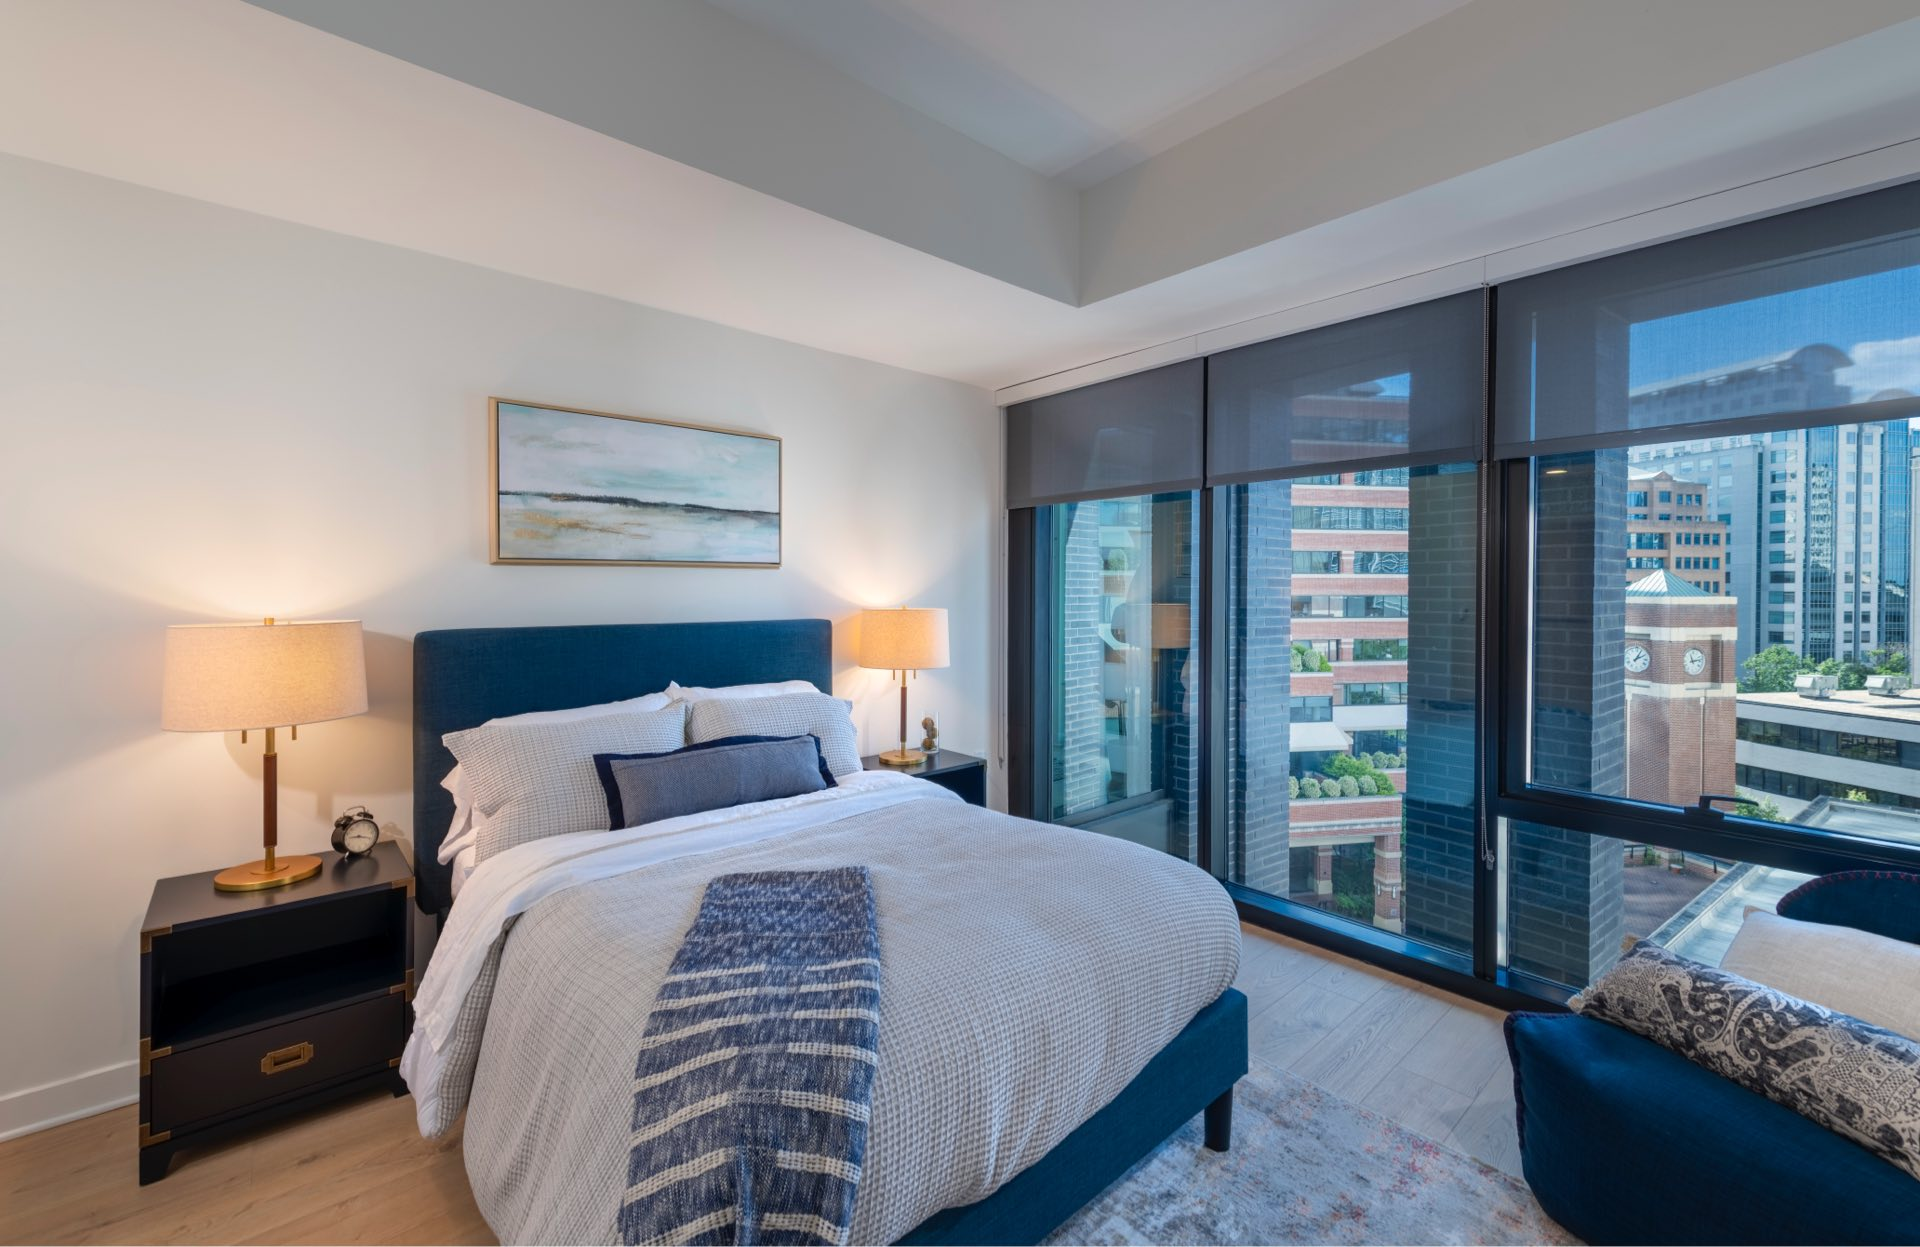 Spacious bedrooms with recessed, dimmable lighting, and roller shades.